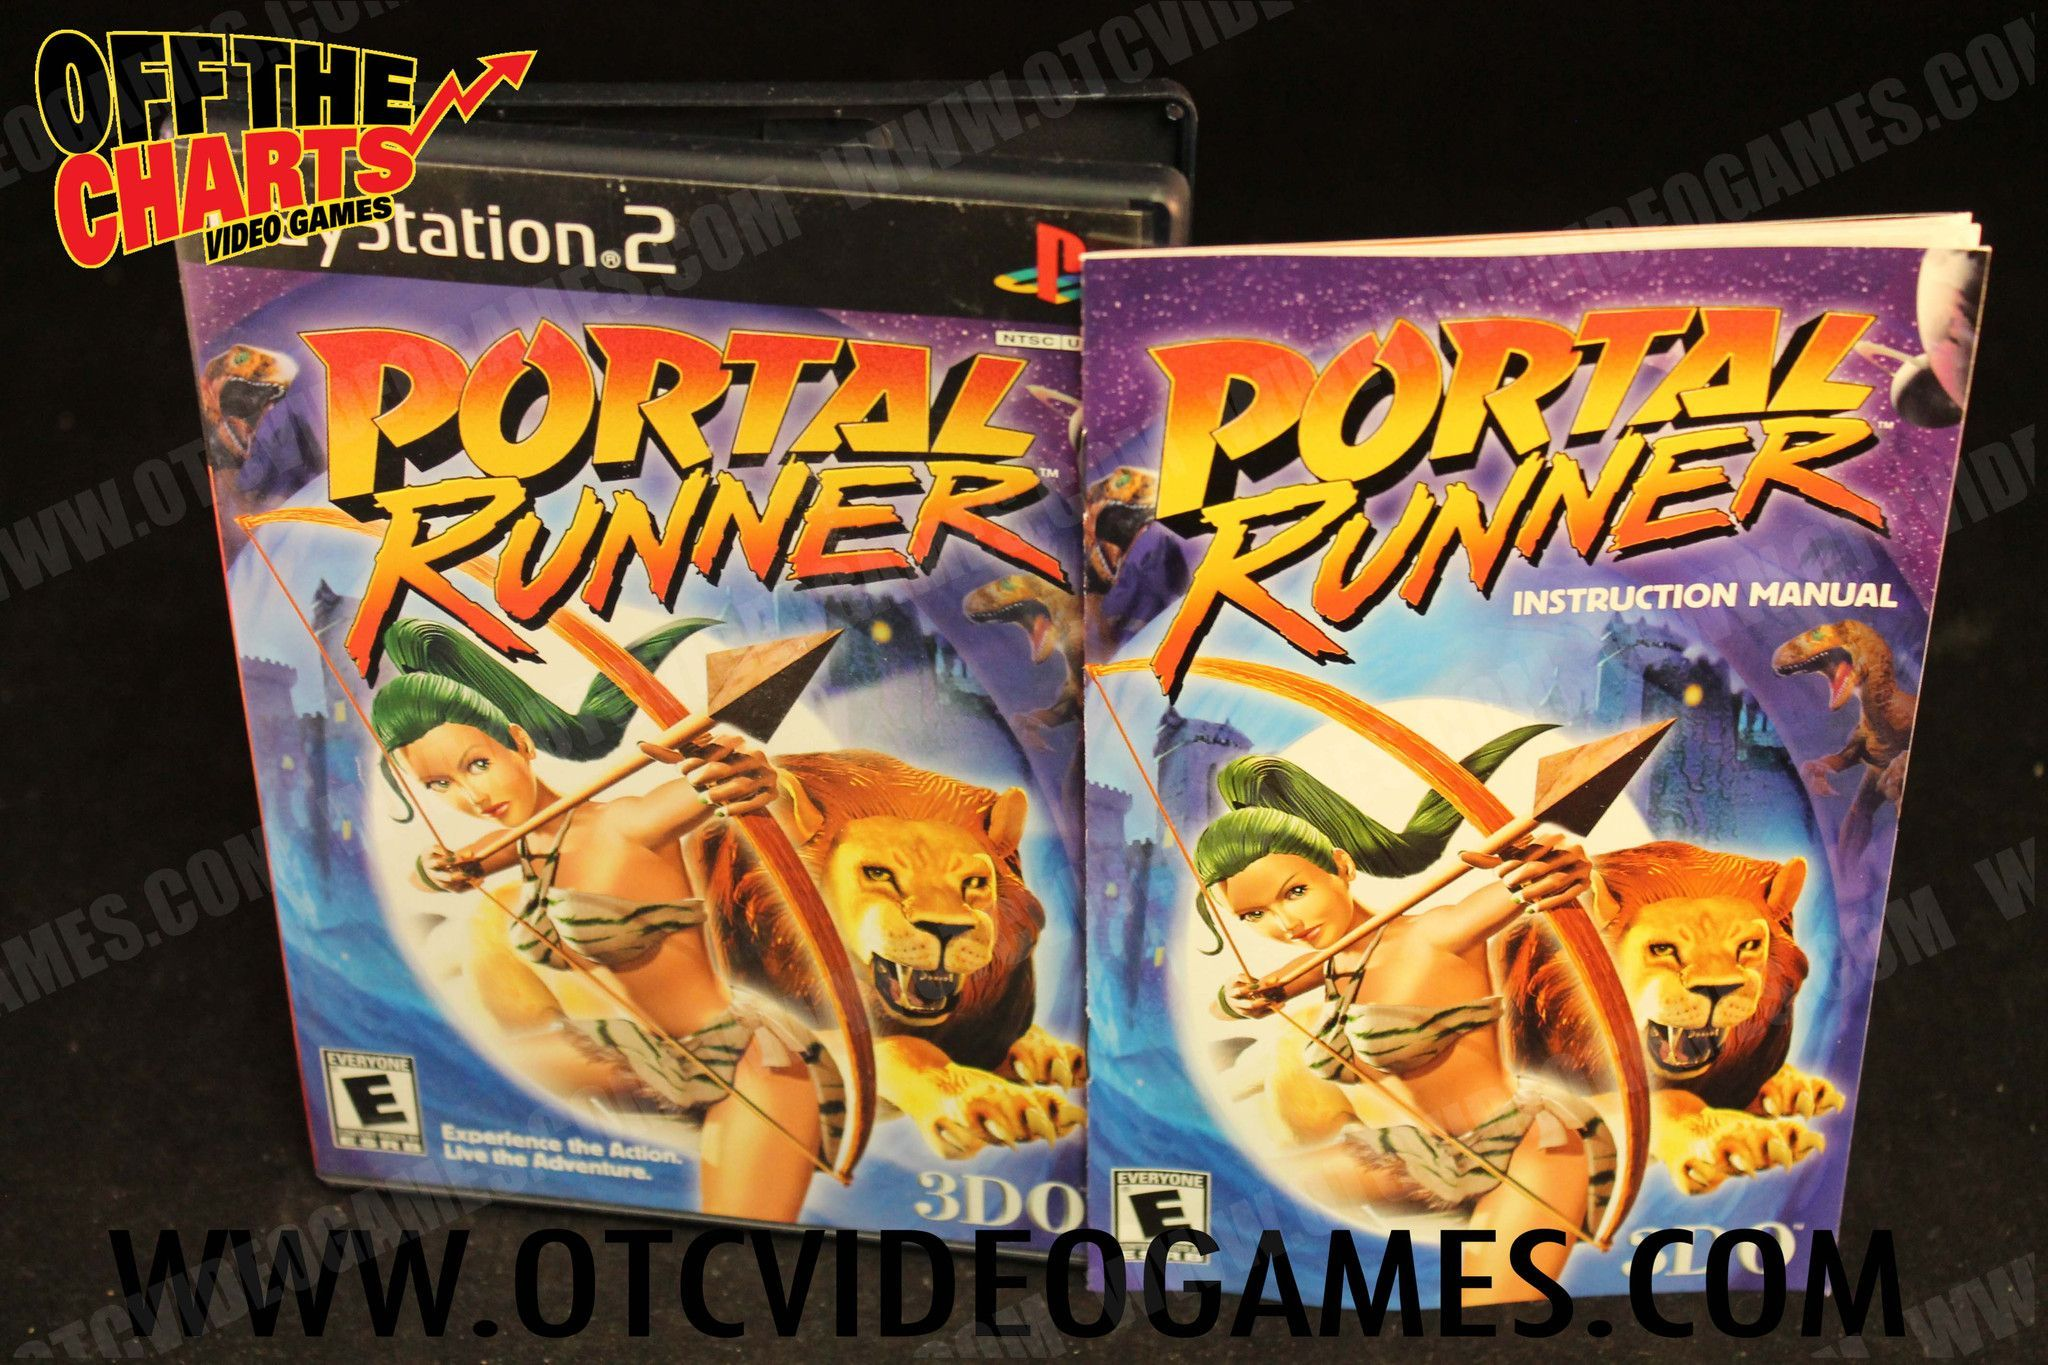 Portal Runner for the Playstation 2